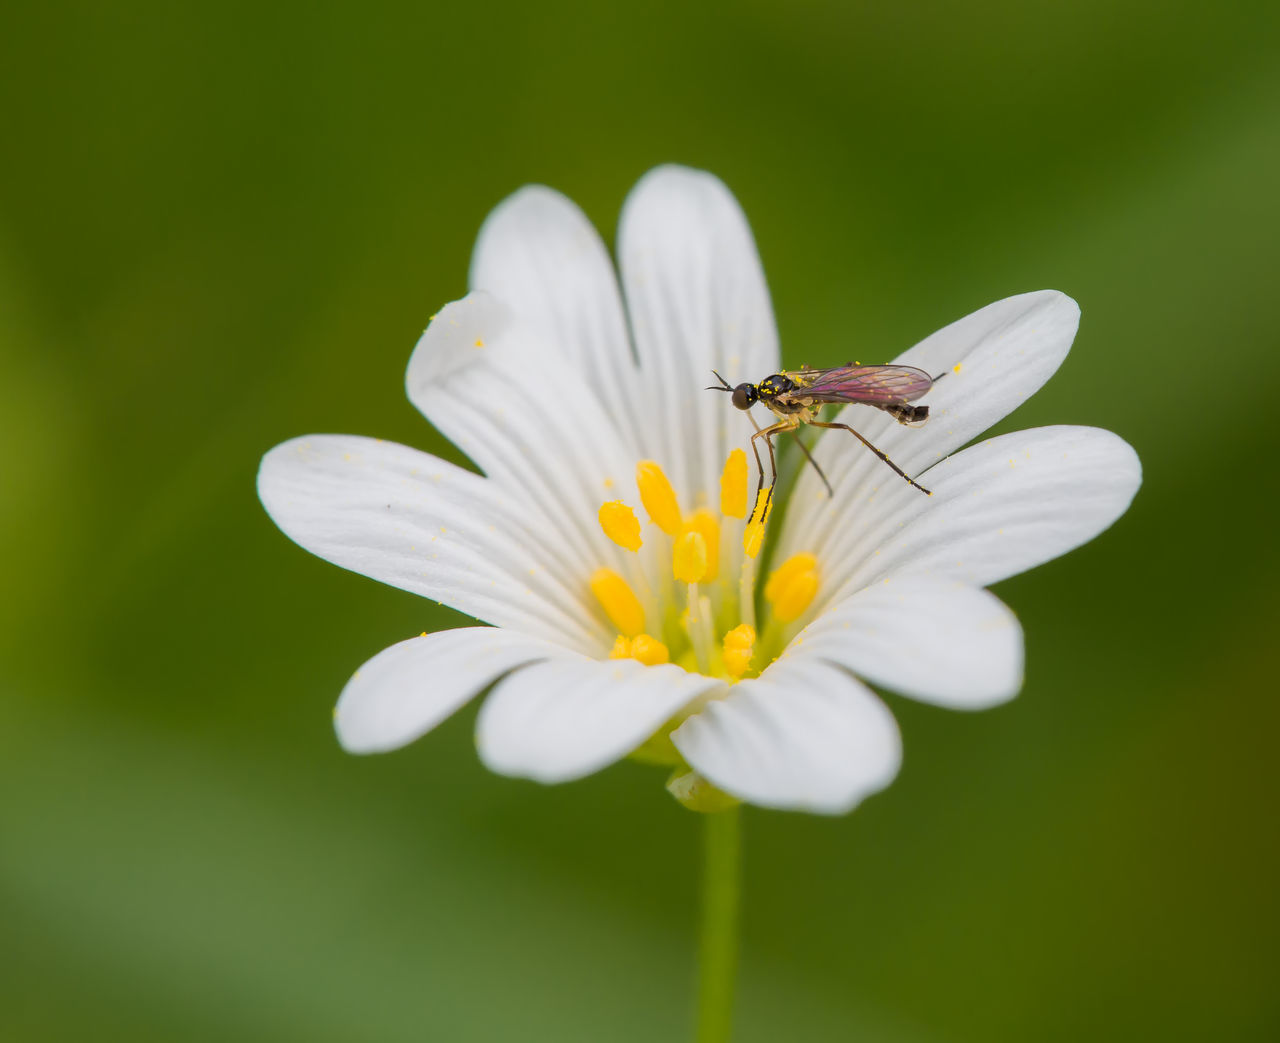 Small fly on Flower Animal Themes Animal Wildlife Animals In The Wild Beauty In Nature Bee Blooming Close-up Day Flower Flower Head Fragility Freshness Growth Insect Nature No People One Animal Outdoors Petal Plant Pollen Pollination White Color